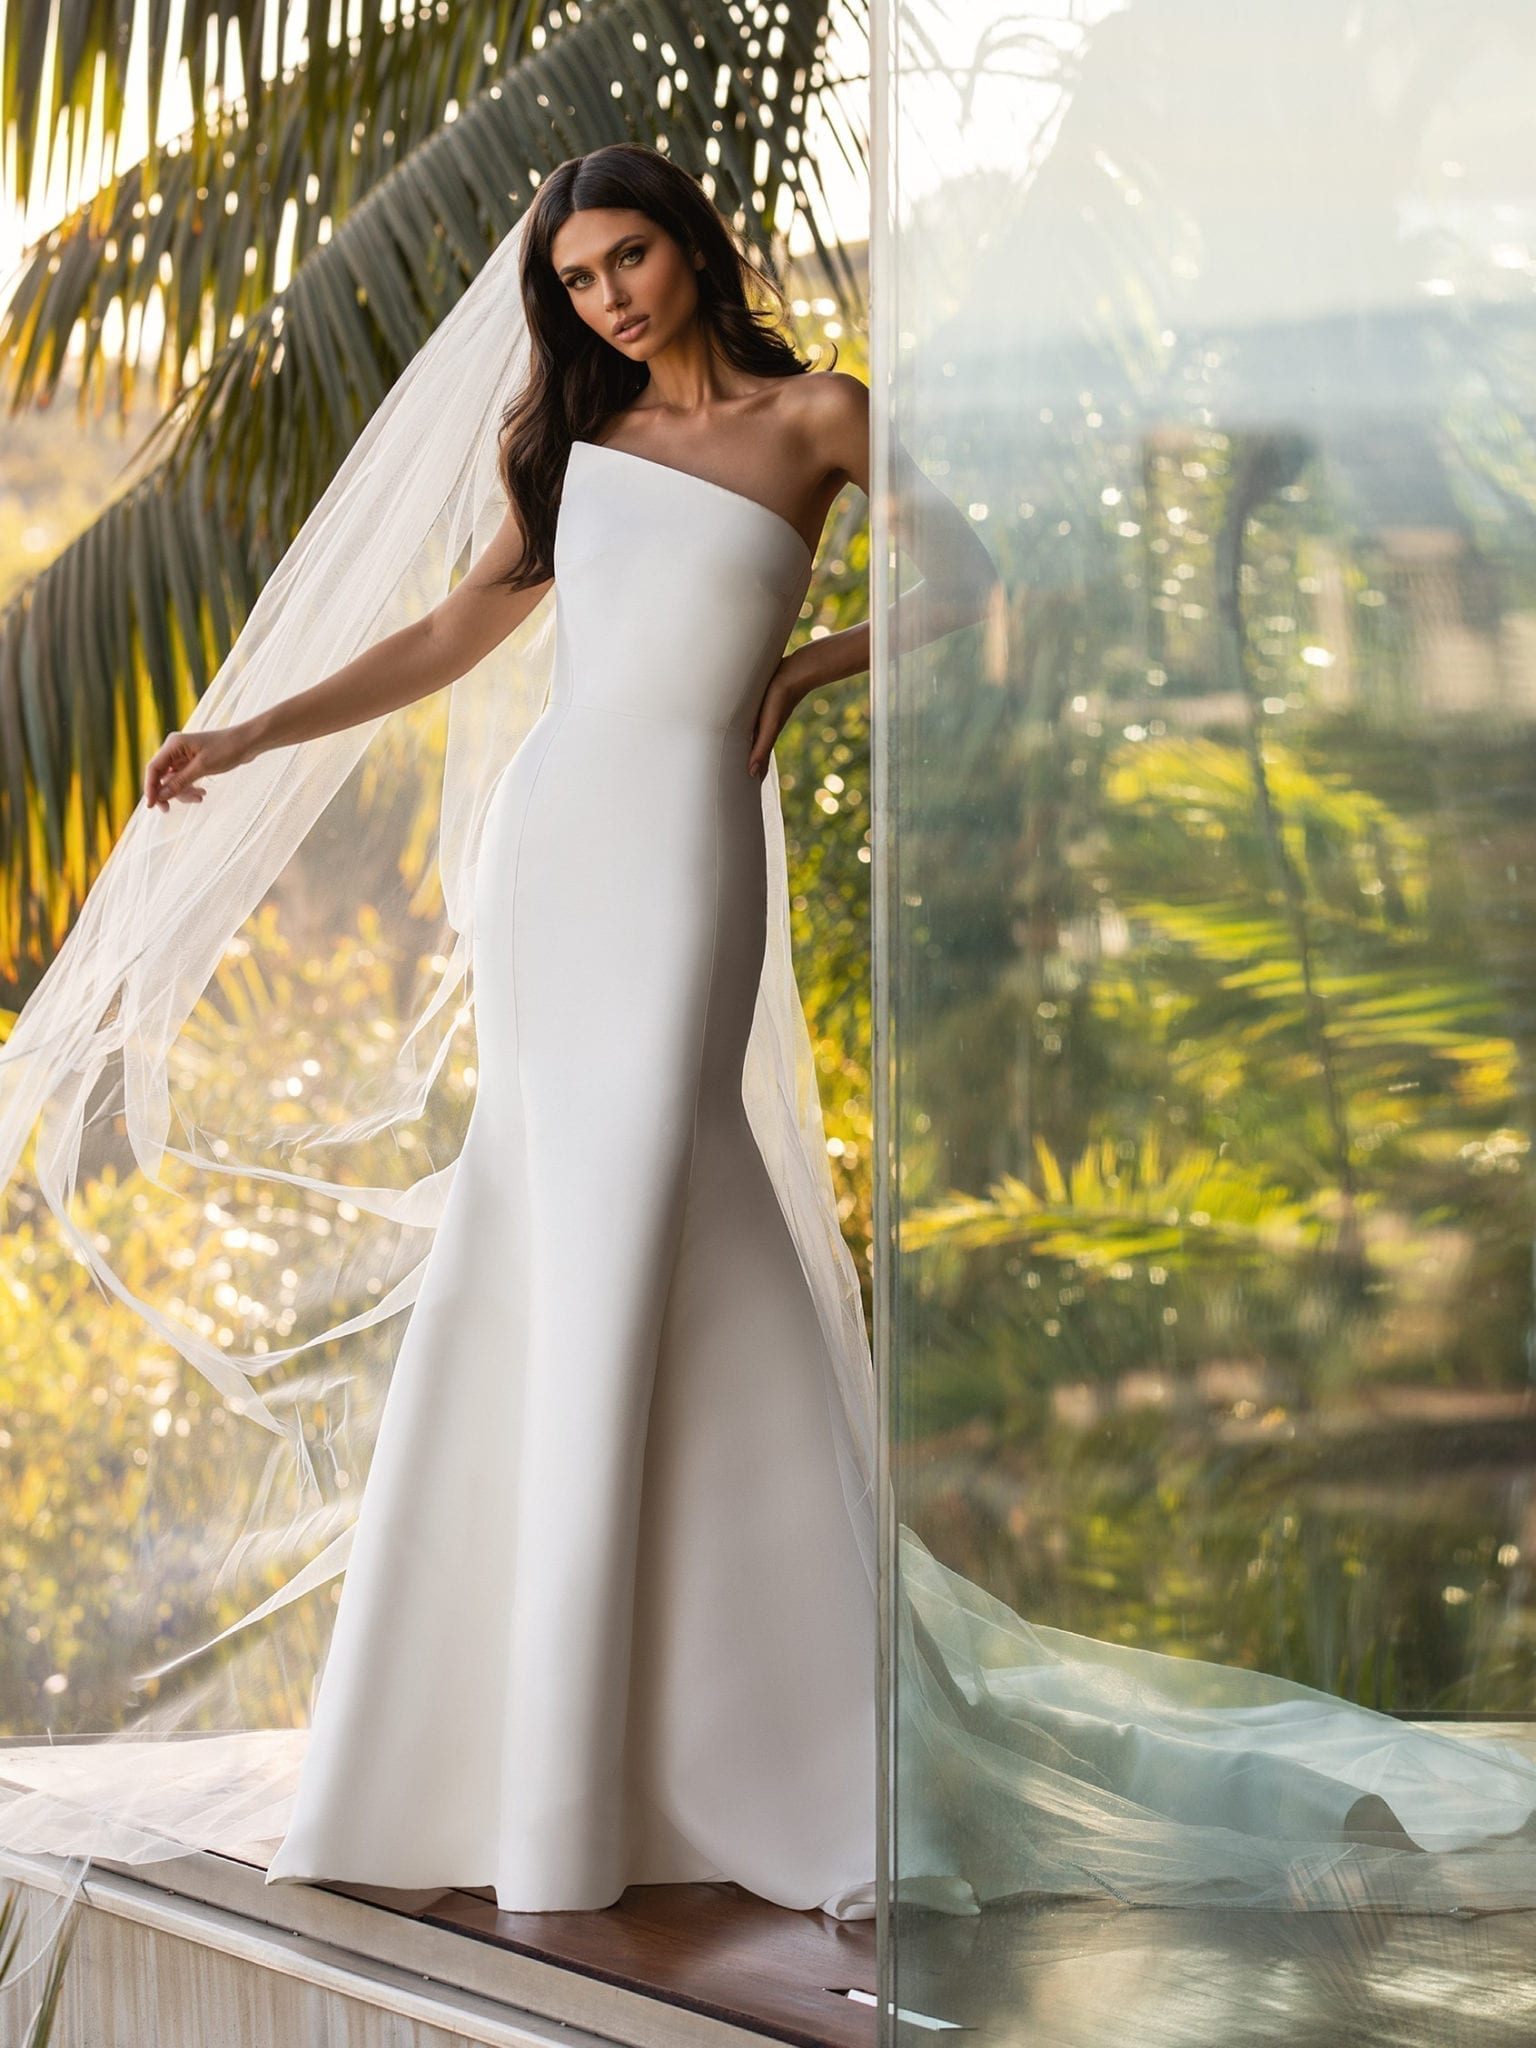 Day_Pronovias-ashley_graham_Mikado_Wedding_Dress_Asymmetrical